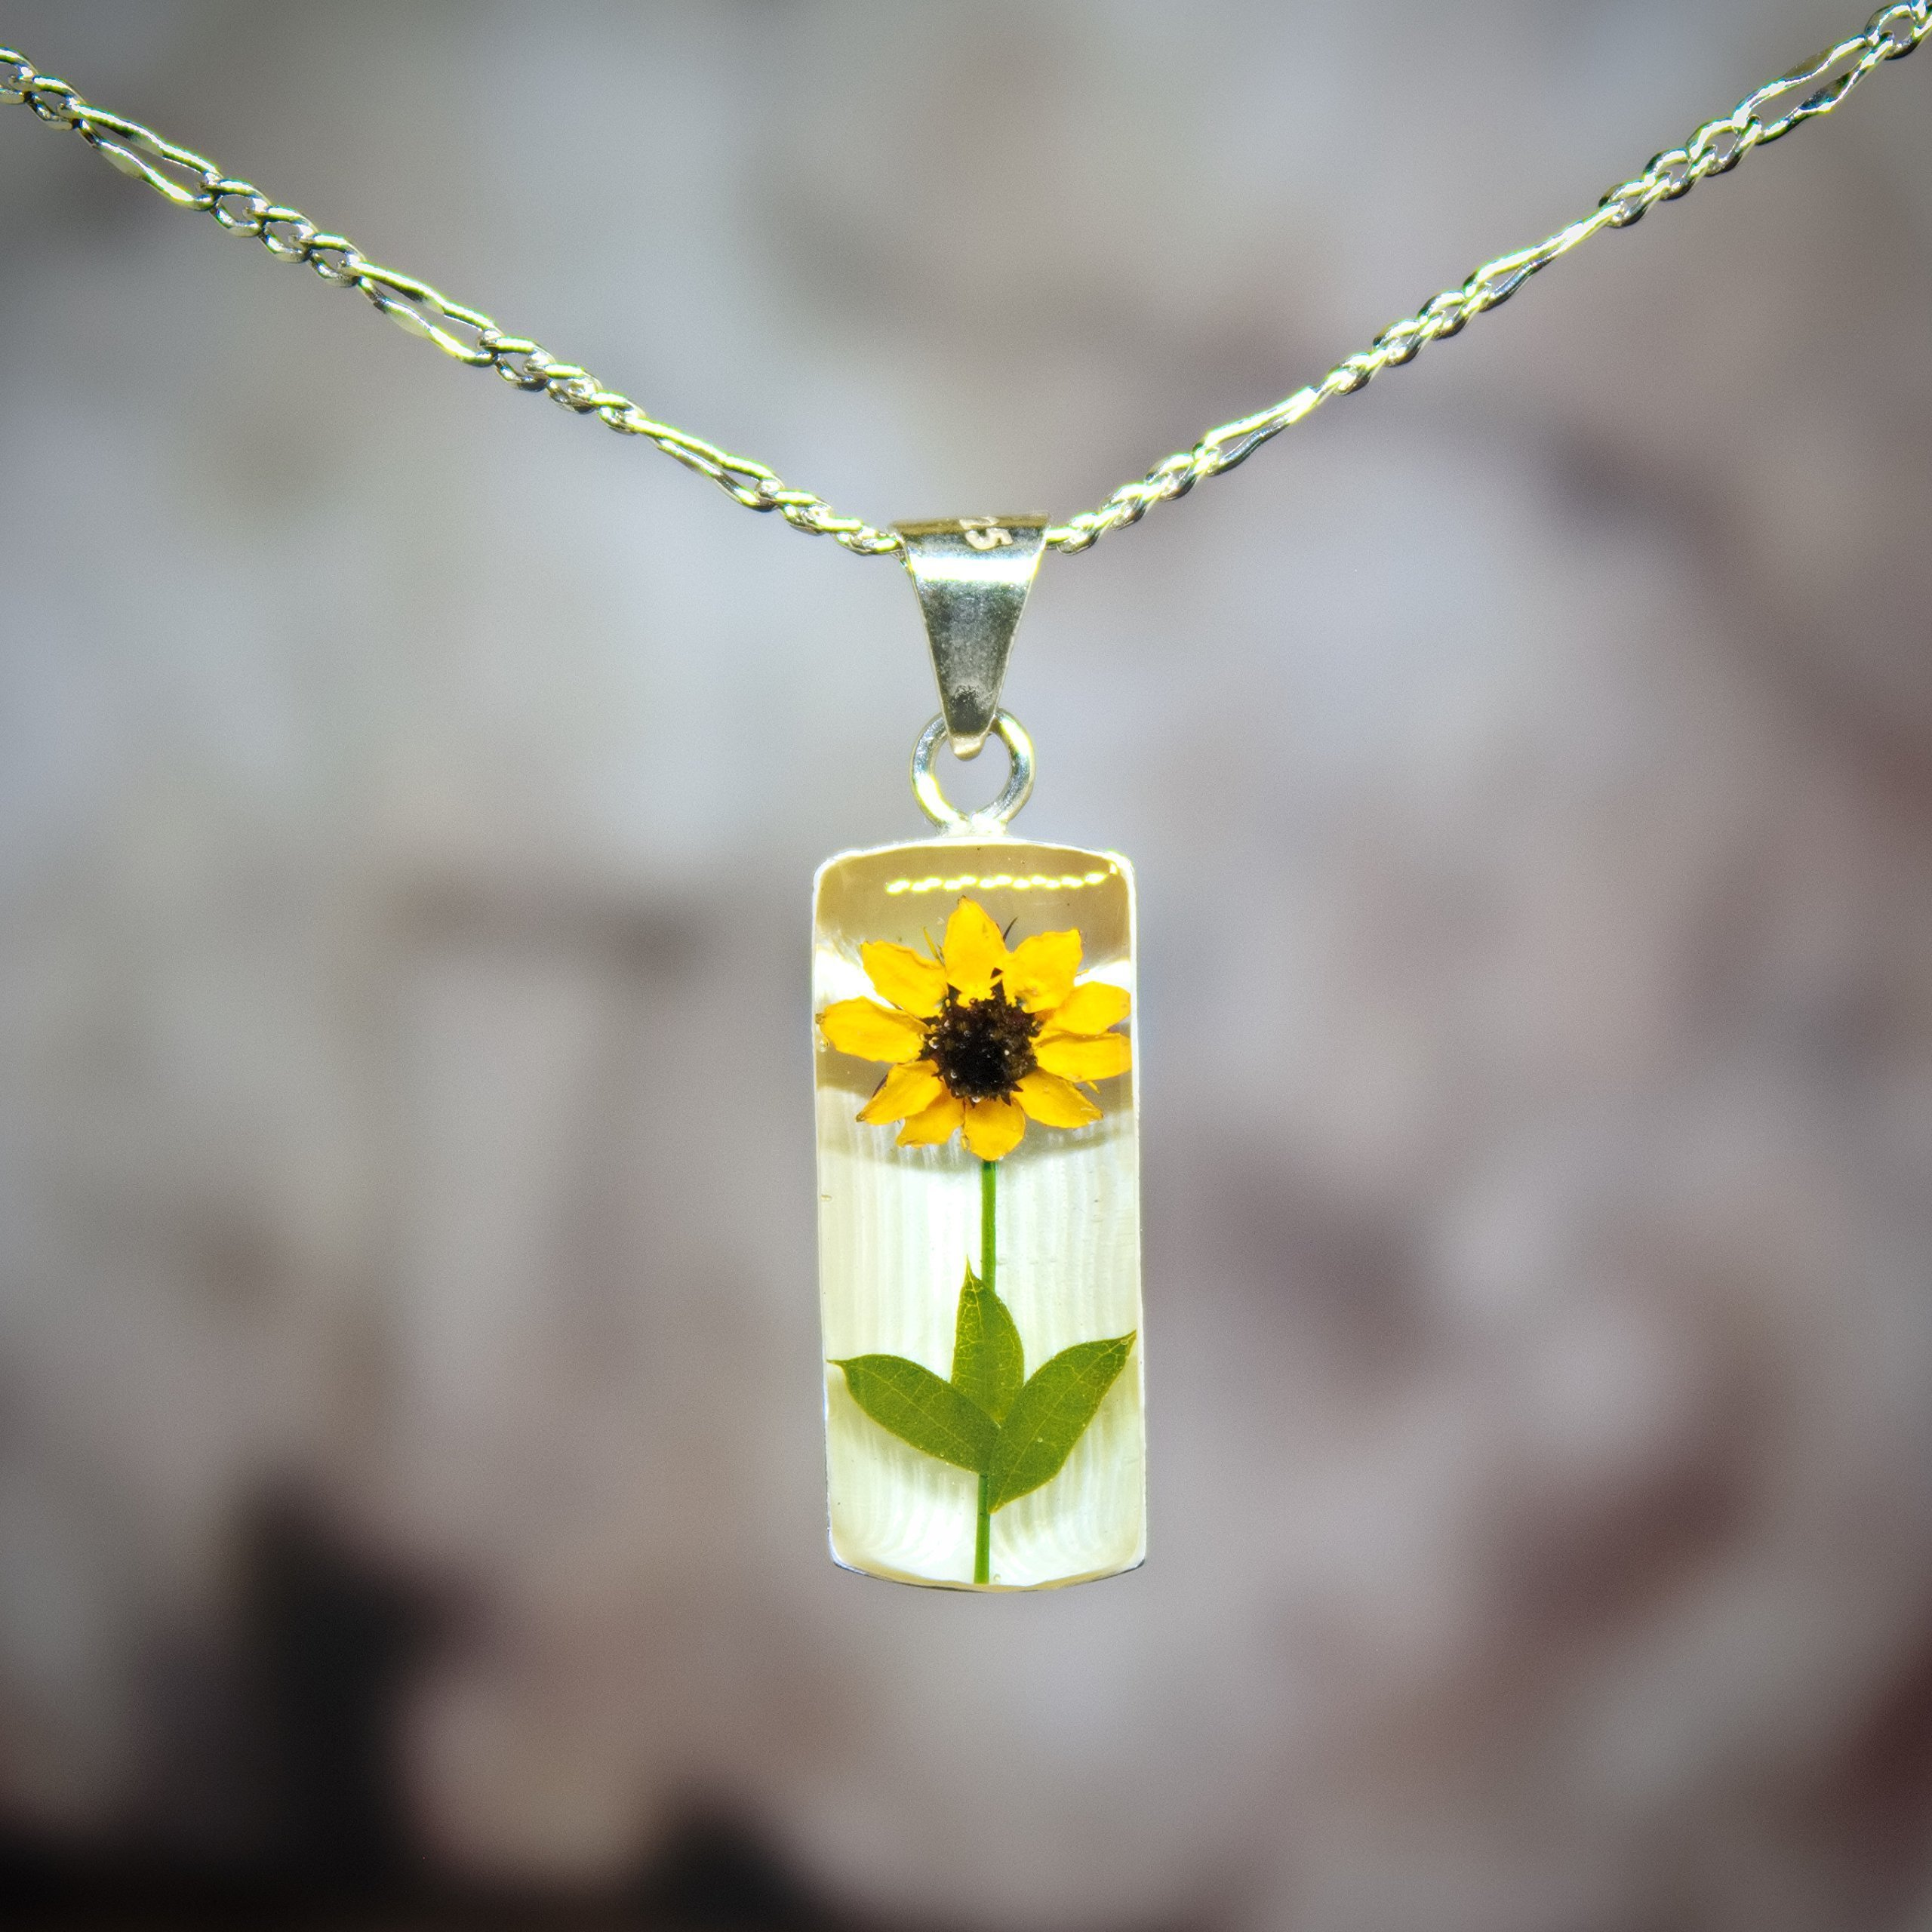 Sterling Silver Necklace with a Real Natural Pressed Miniature Sunflower (Symbol of Happiness and Light) with a 17.71 inches Sterling Silver Chain